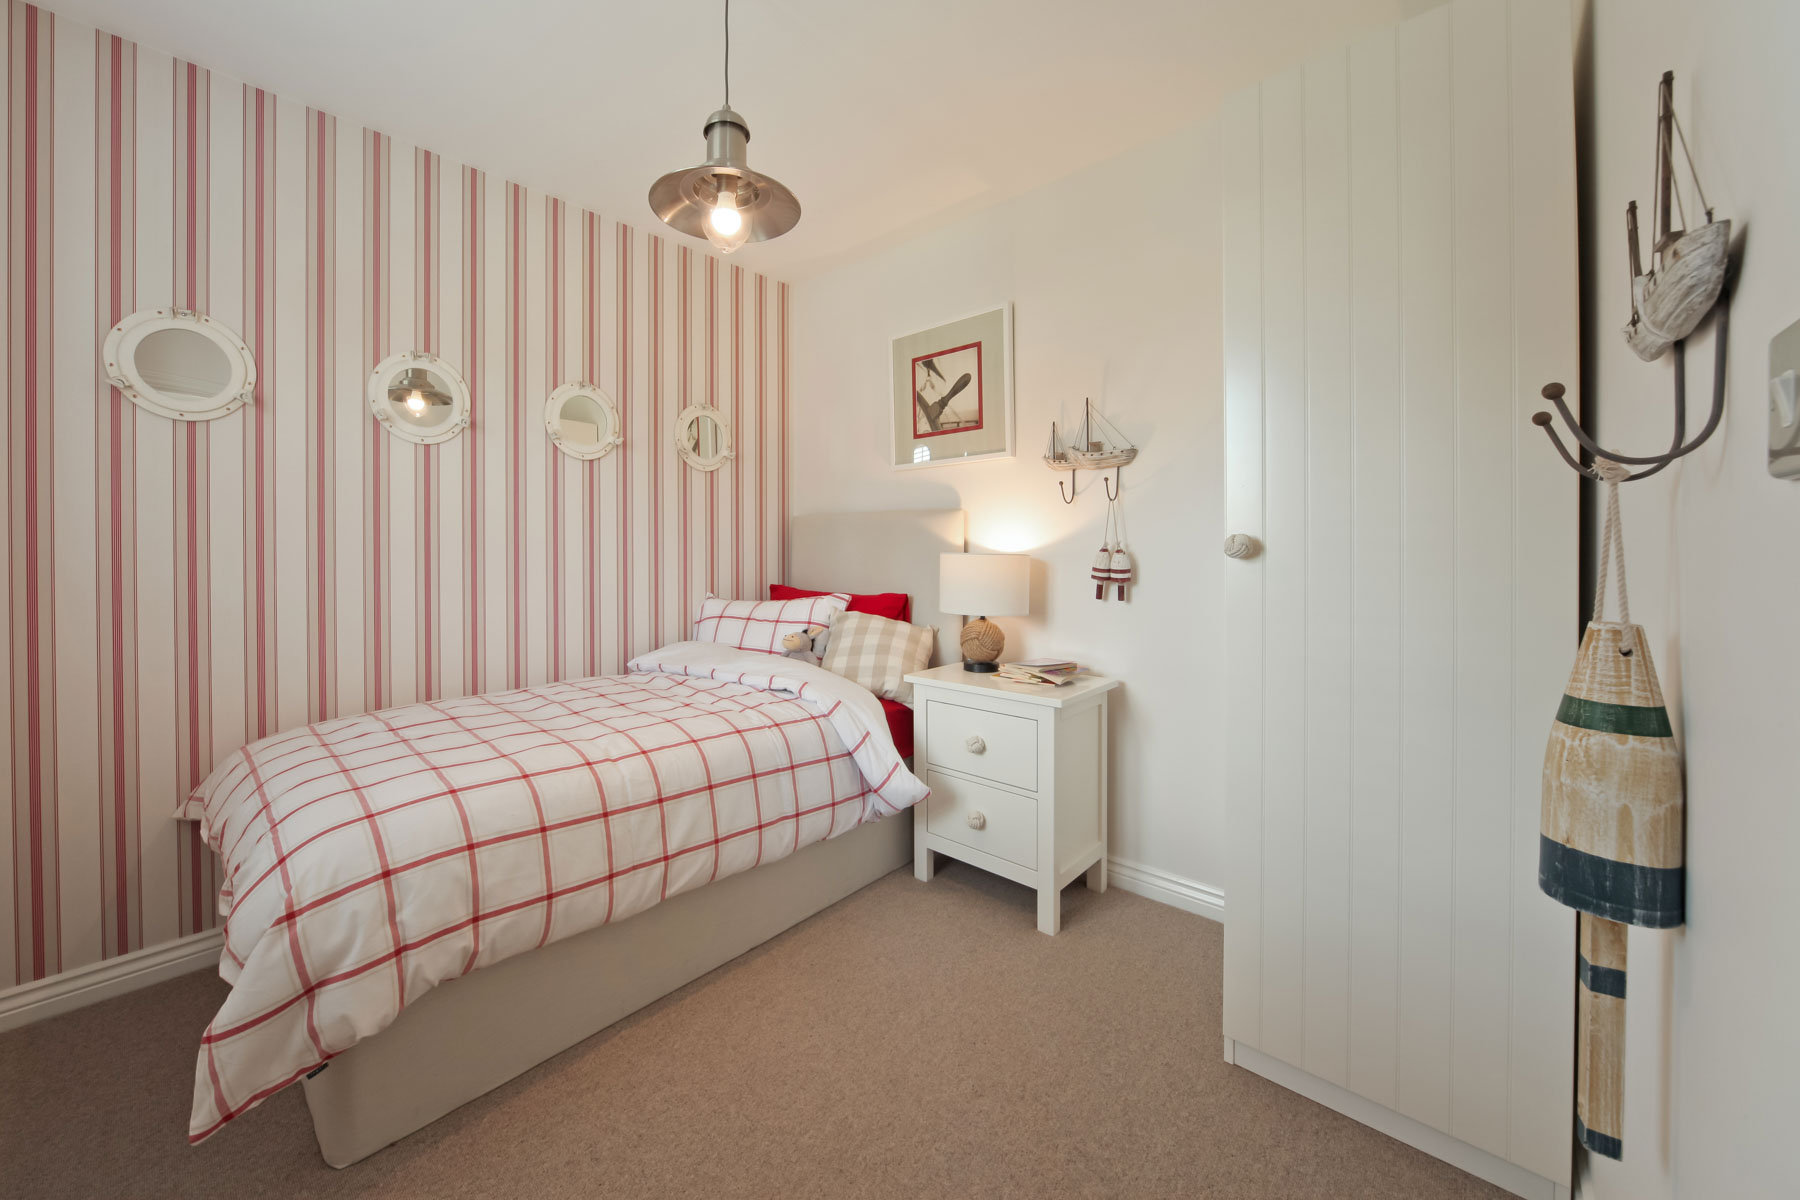 021_WV_Downham_Bedroom_4